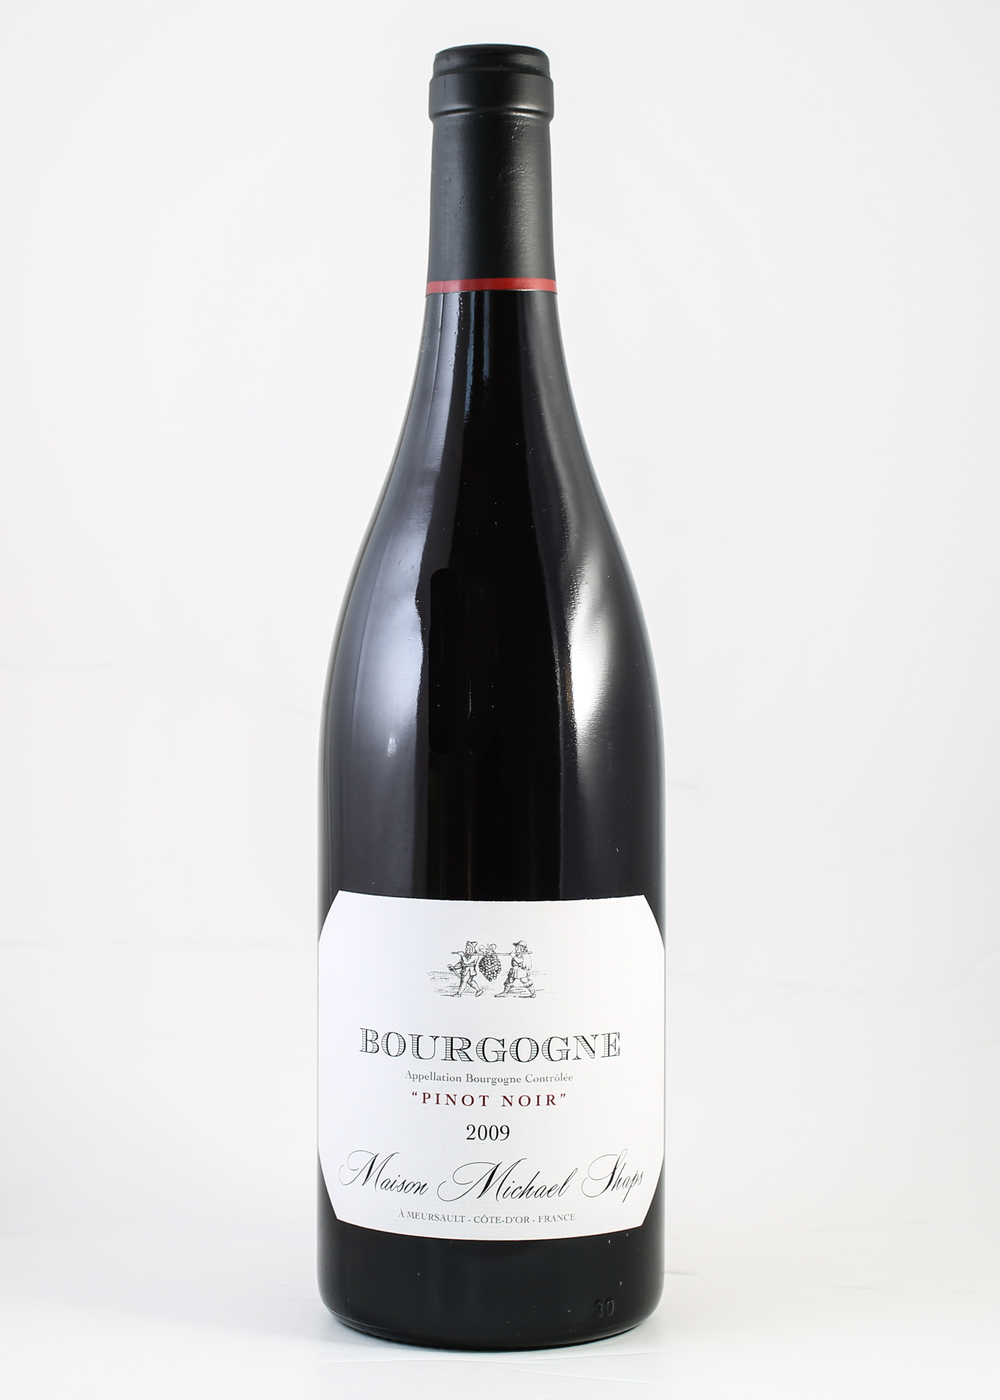 Maison Shaps 2014 Bourgogne Pinot Noir $24 Our Pinot Noir is grown at two different sites in the Haute Cote de Beaune.  Both sites provide fresh red fruit notes and moderate structure.  We ferment the Pinot to full dryness on the skins with extended post fermentation maceration. The wine is aged in neutral oak for nine months prior to bottling.  We look to bring out bright red fruits with moderate tannins and to produce an easy approachable wine.